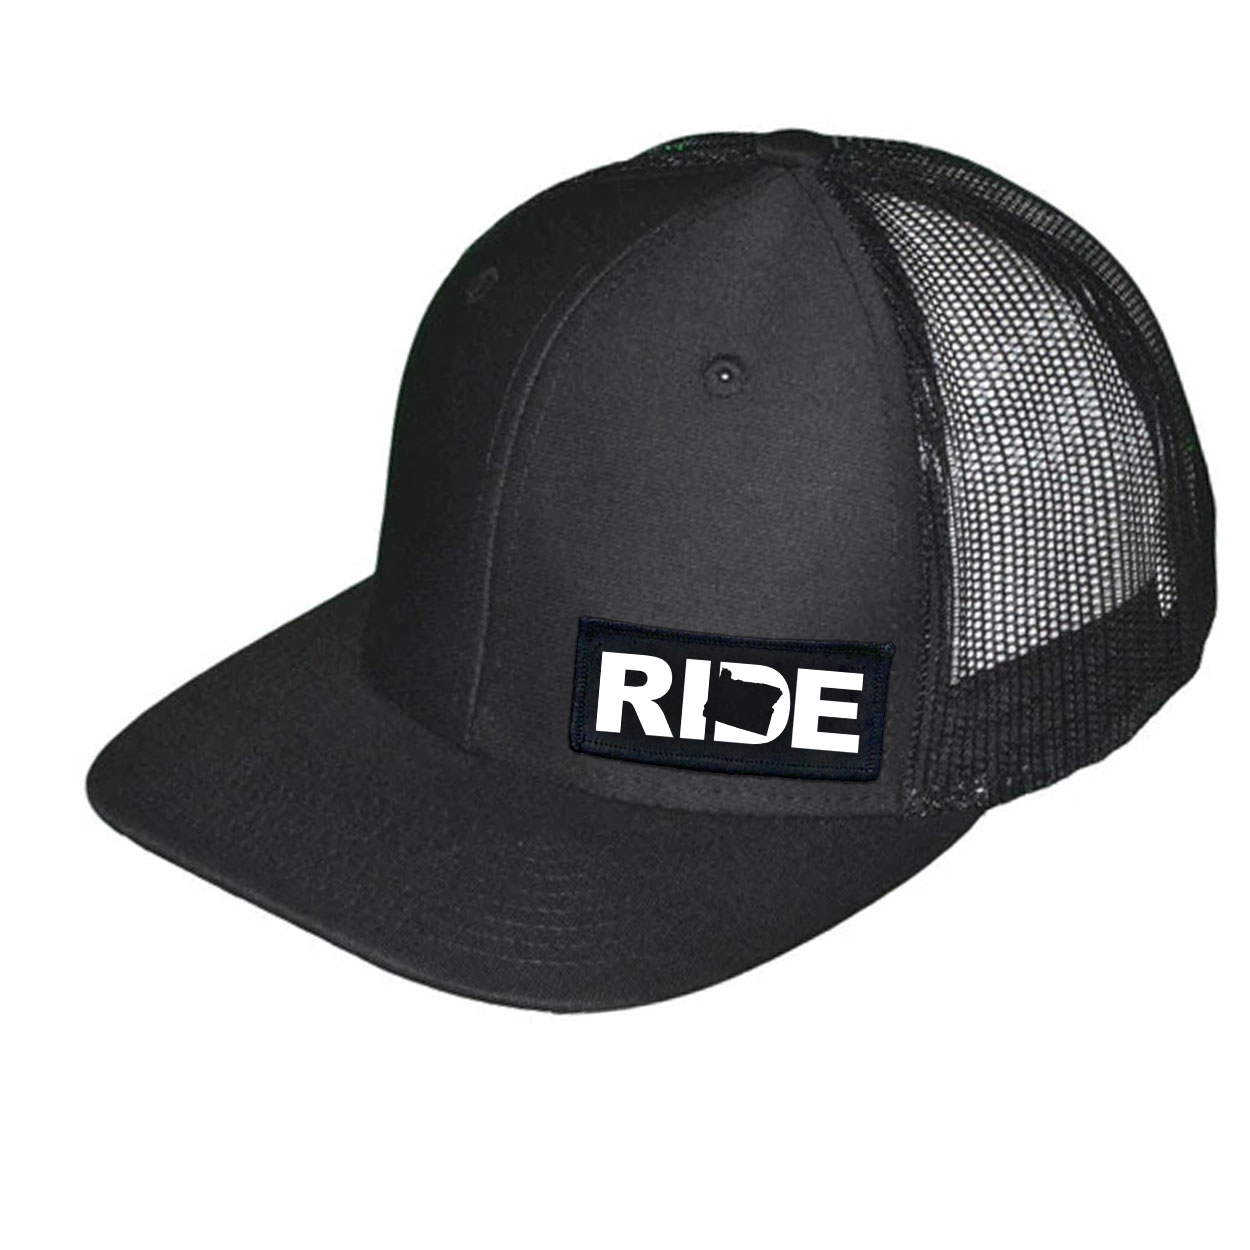 Ride Oregon Night Out Woven Patch Snapback Trucker Hat Black (White Logo)